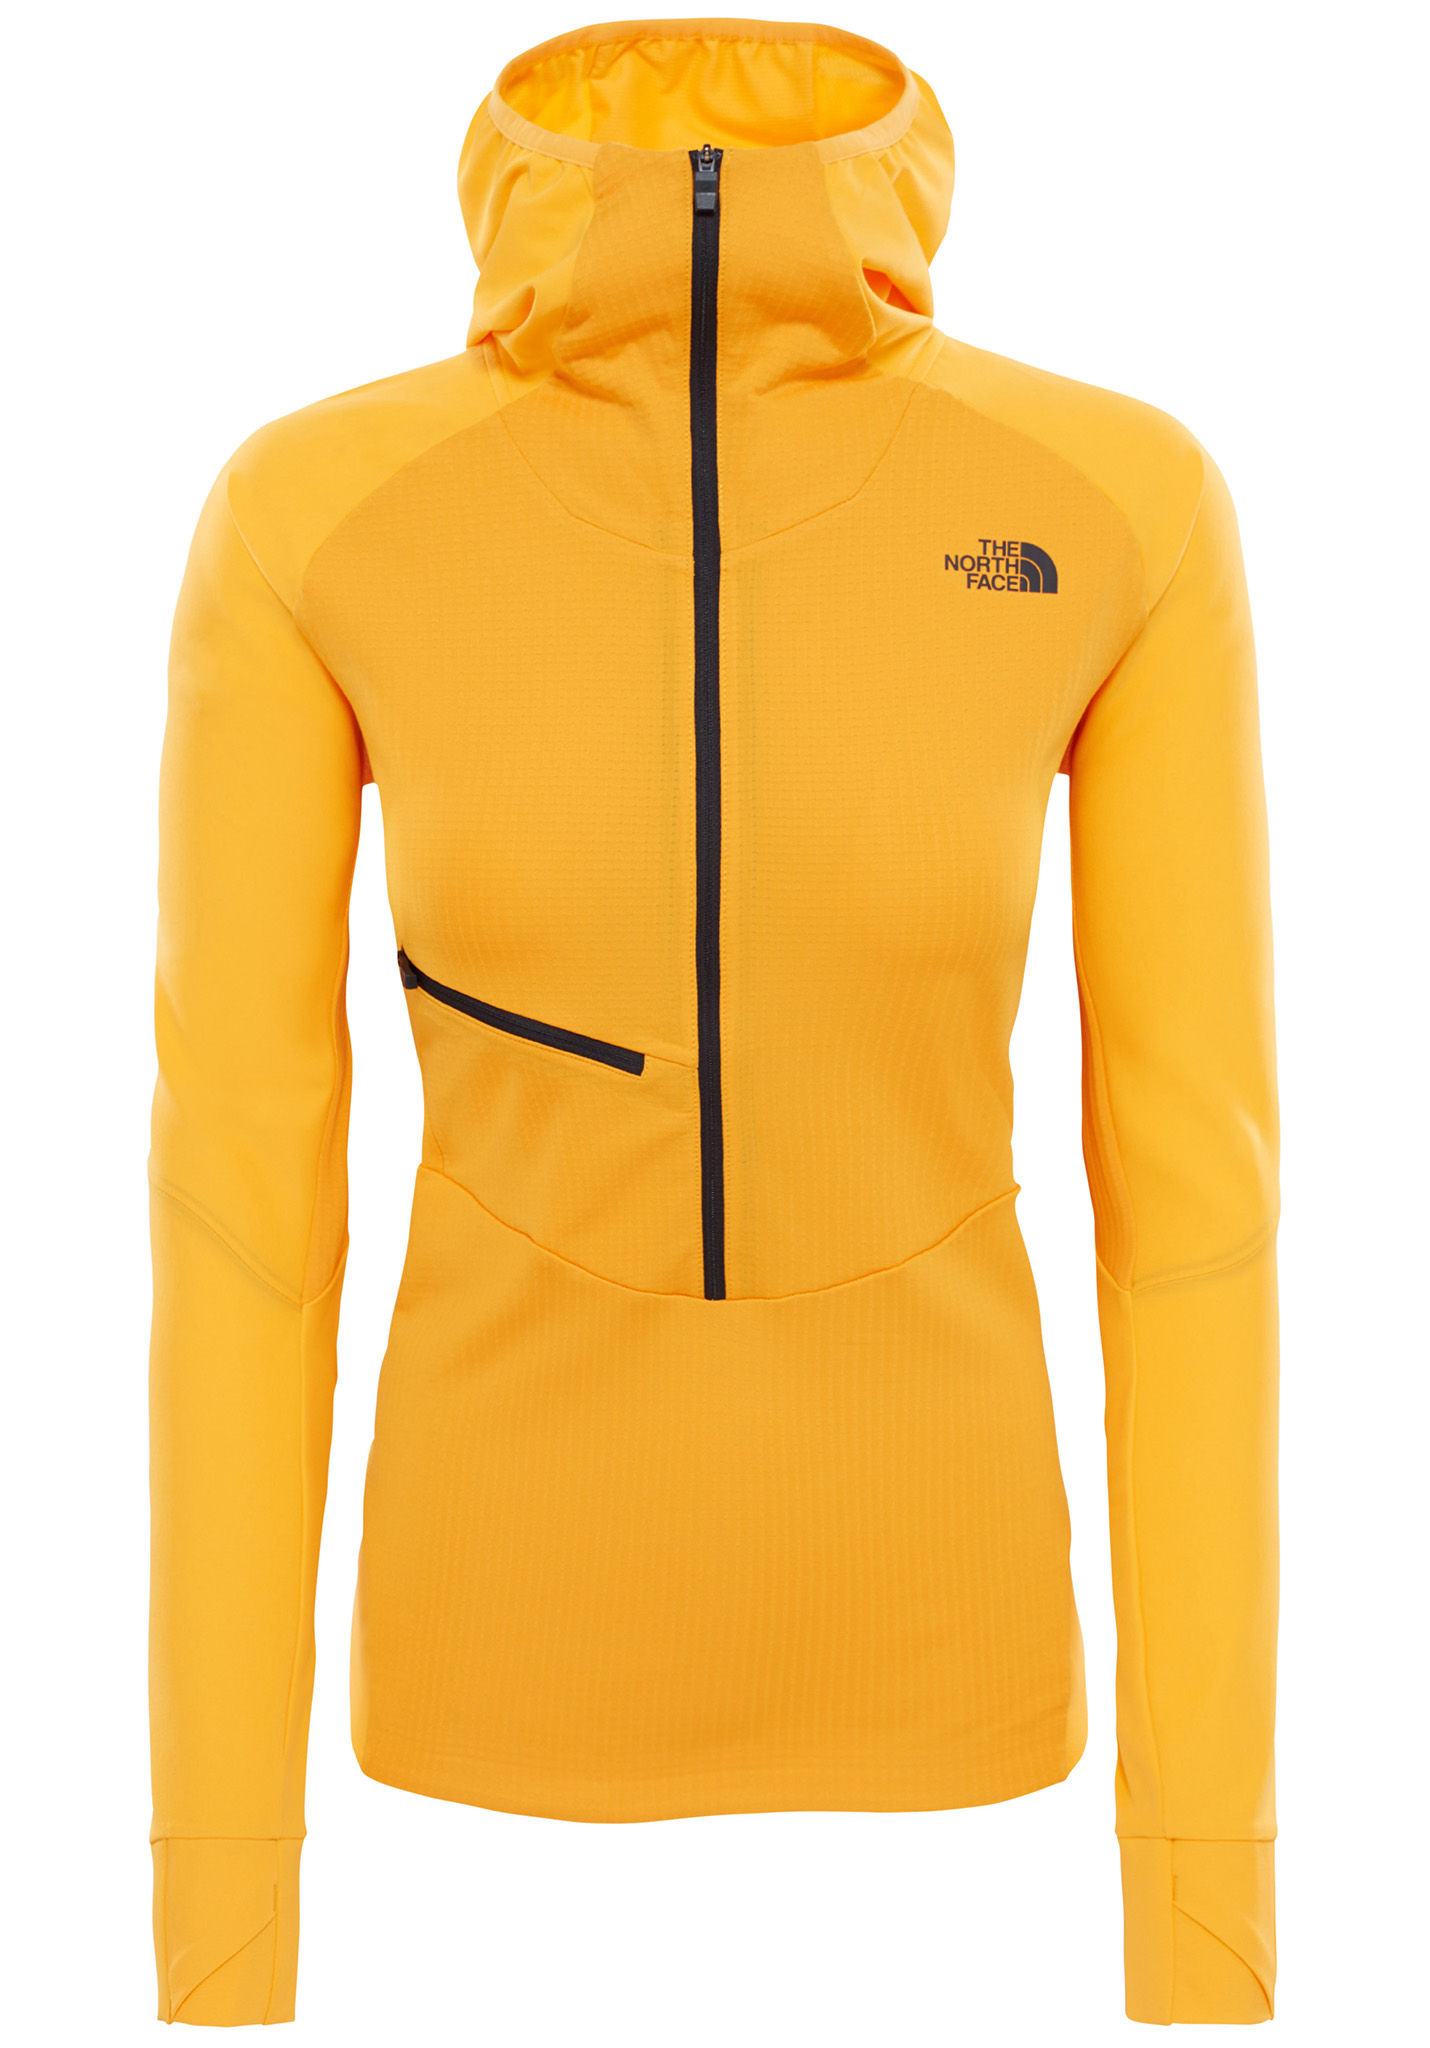 THE NORTH FACE Respirator - Fleece Jacket for Women - Yellow ...